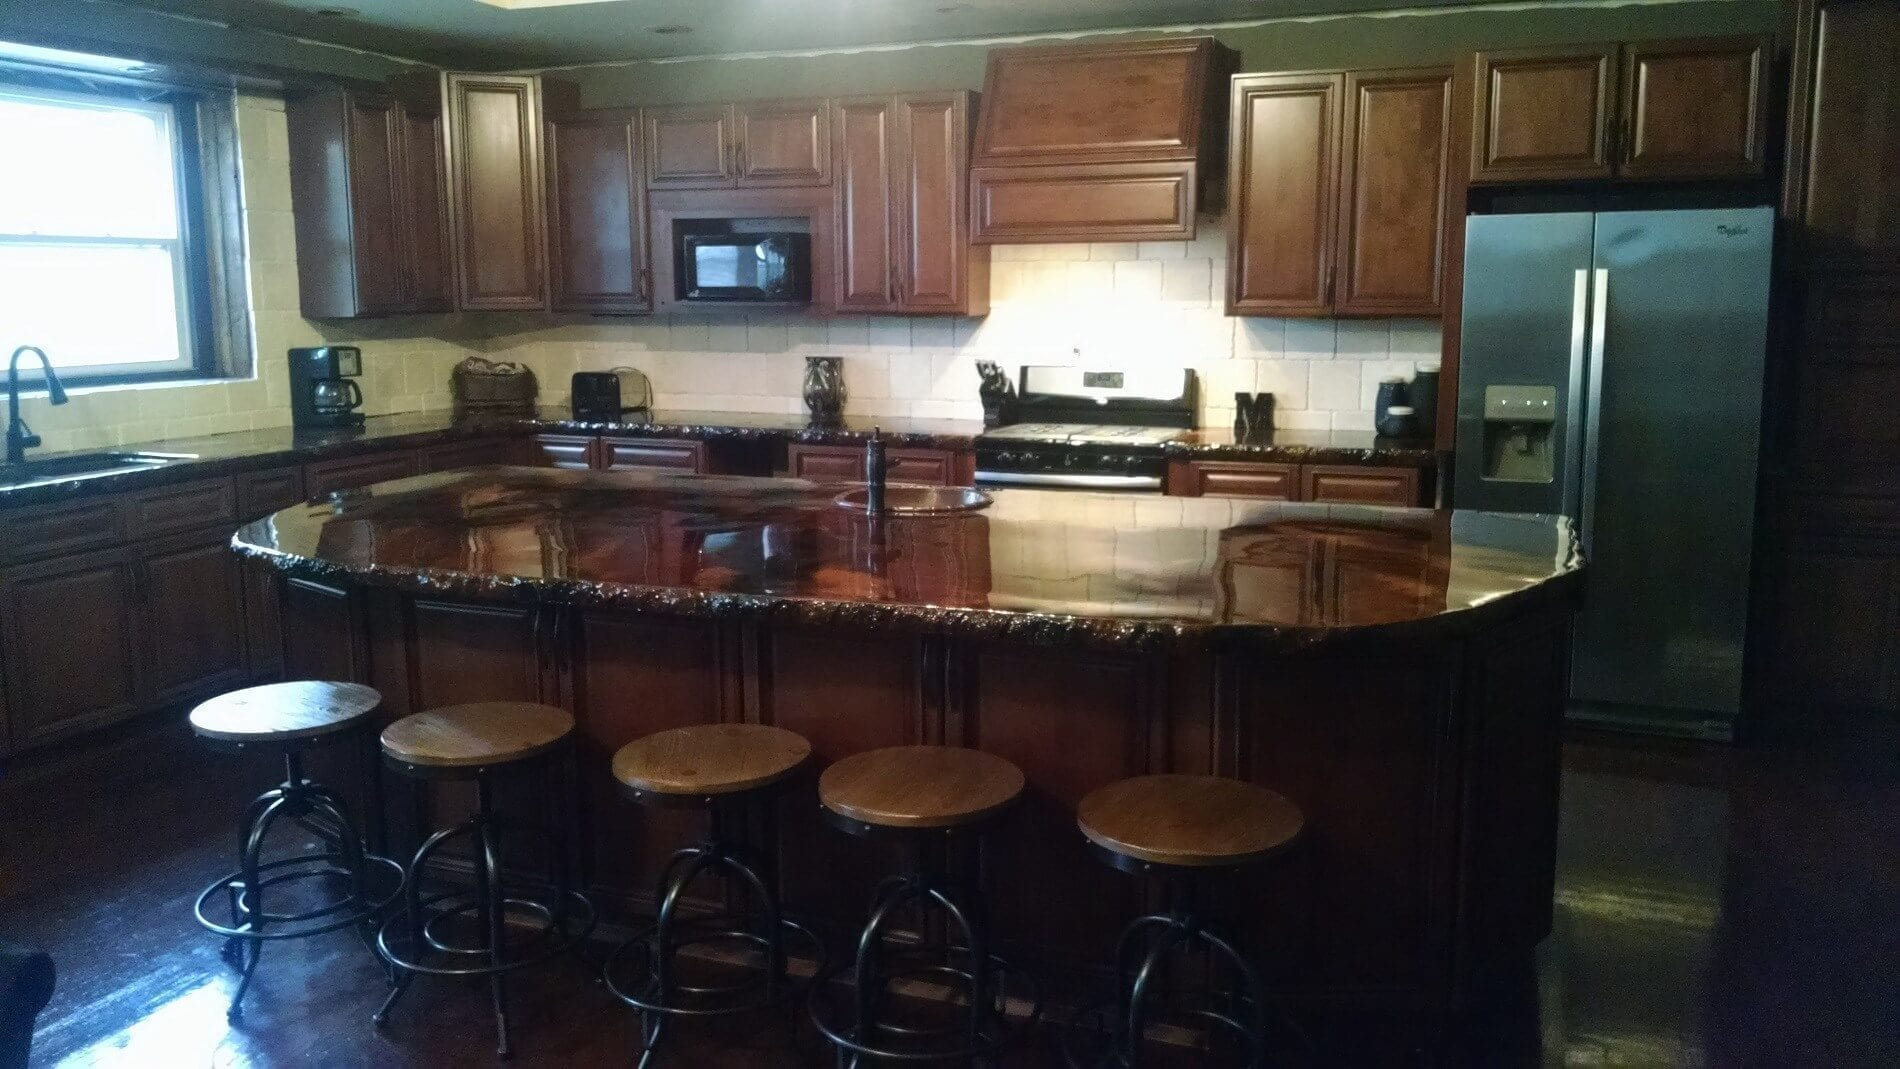 Design by project: Marbling Acid Stain on Kitchen Countertops